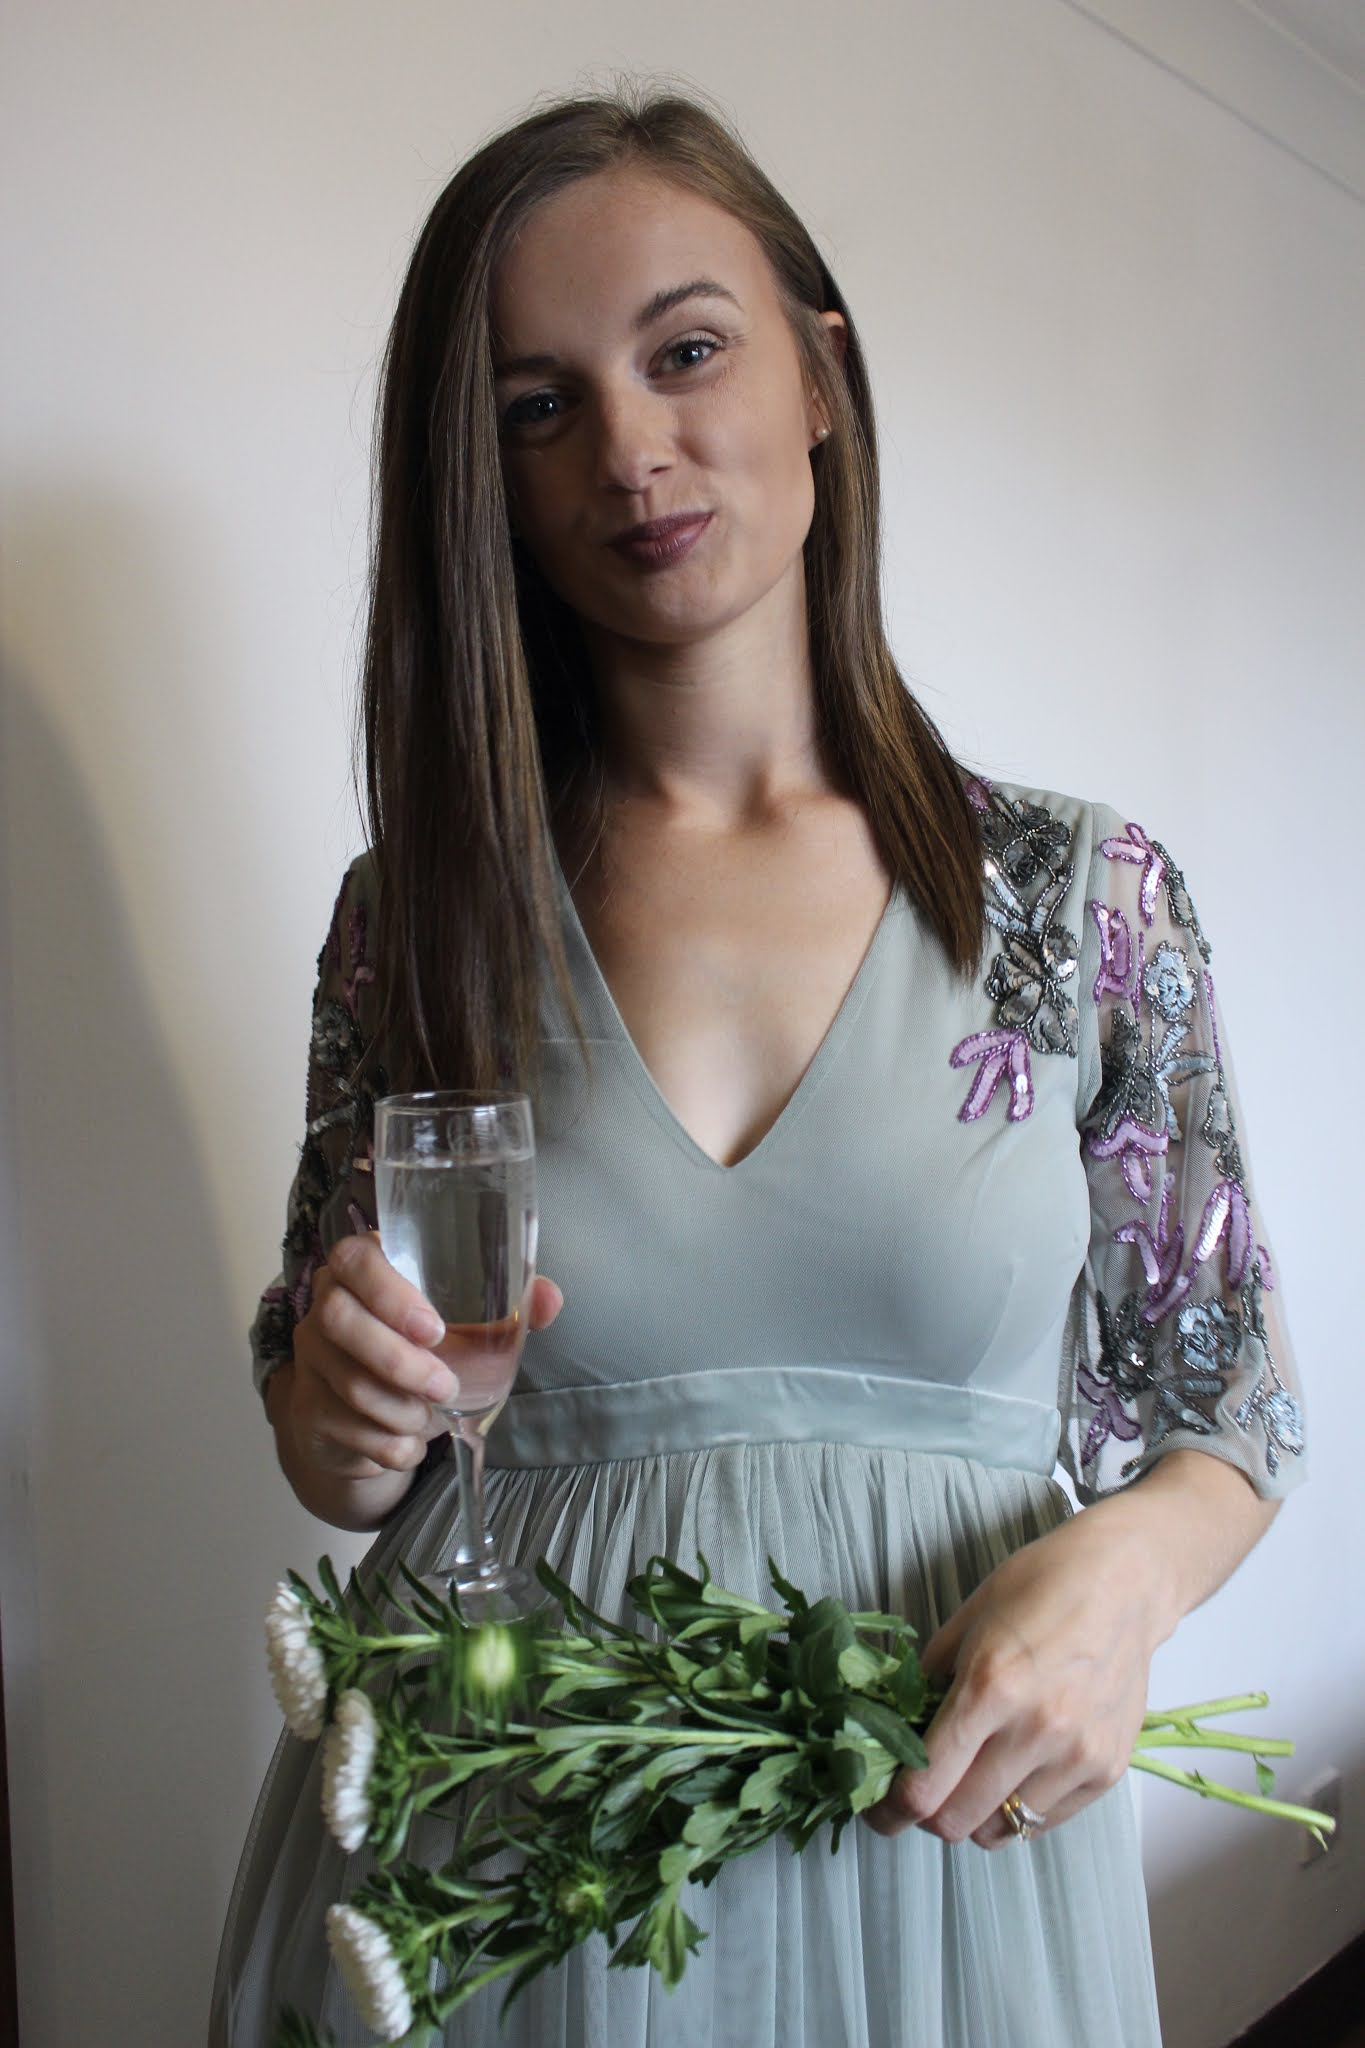 Why turning 30 isn't that bad after all. Claire smiling at the camera holding a bunch of flowers and a champagne flute cheersing to turning 30.